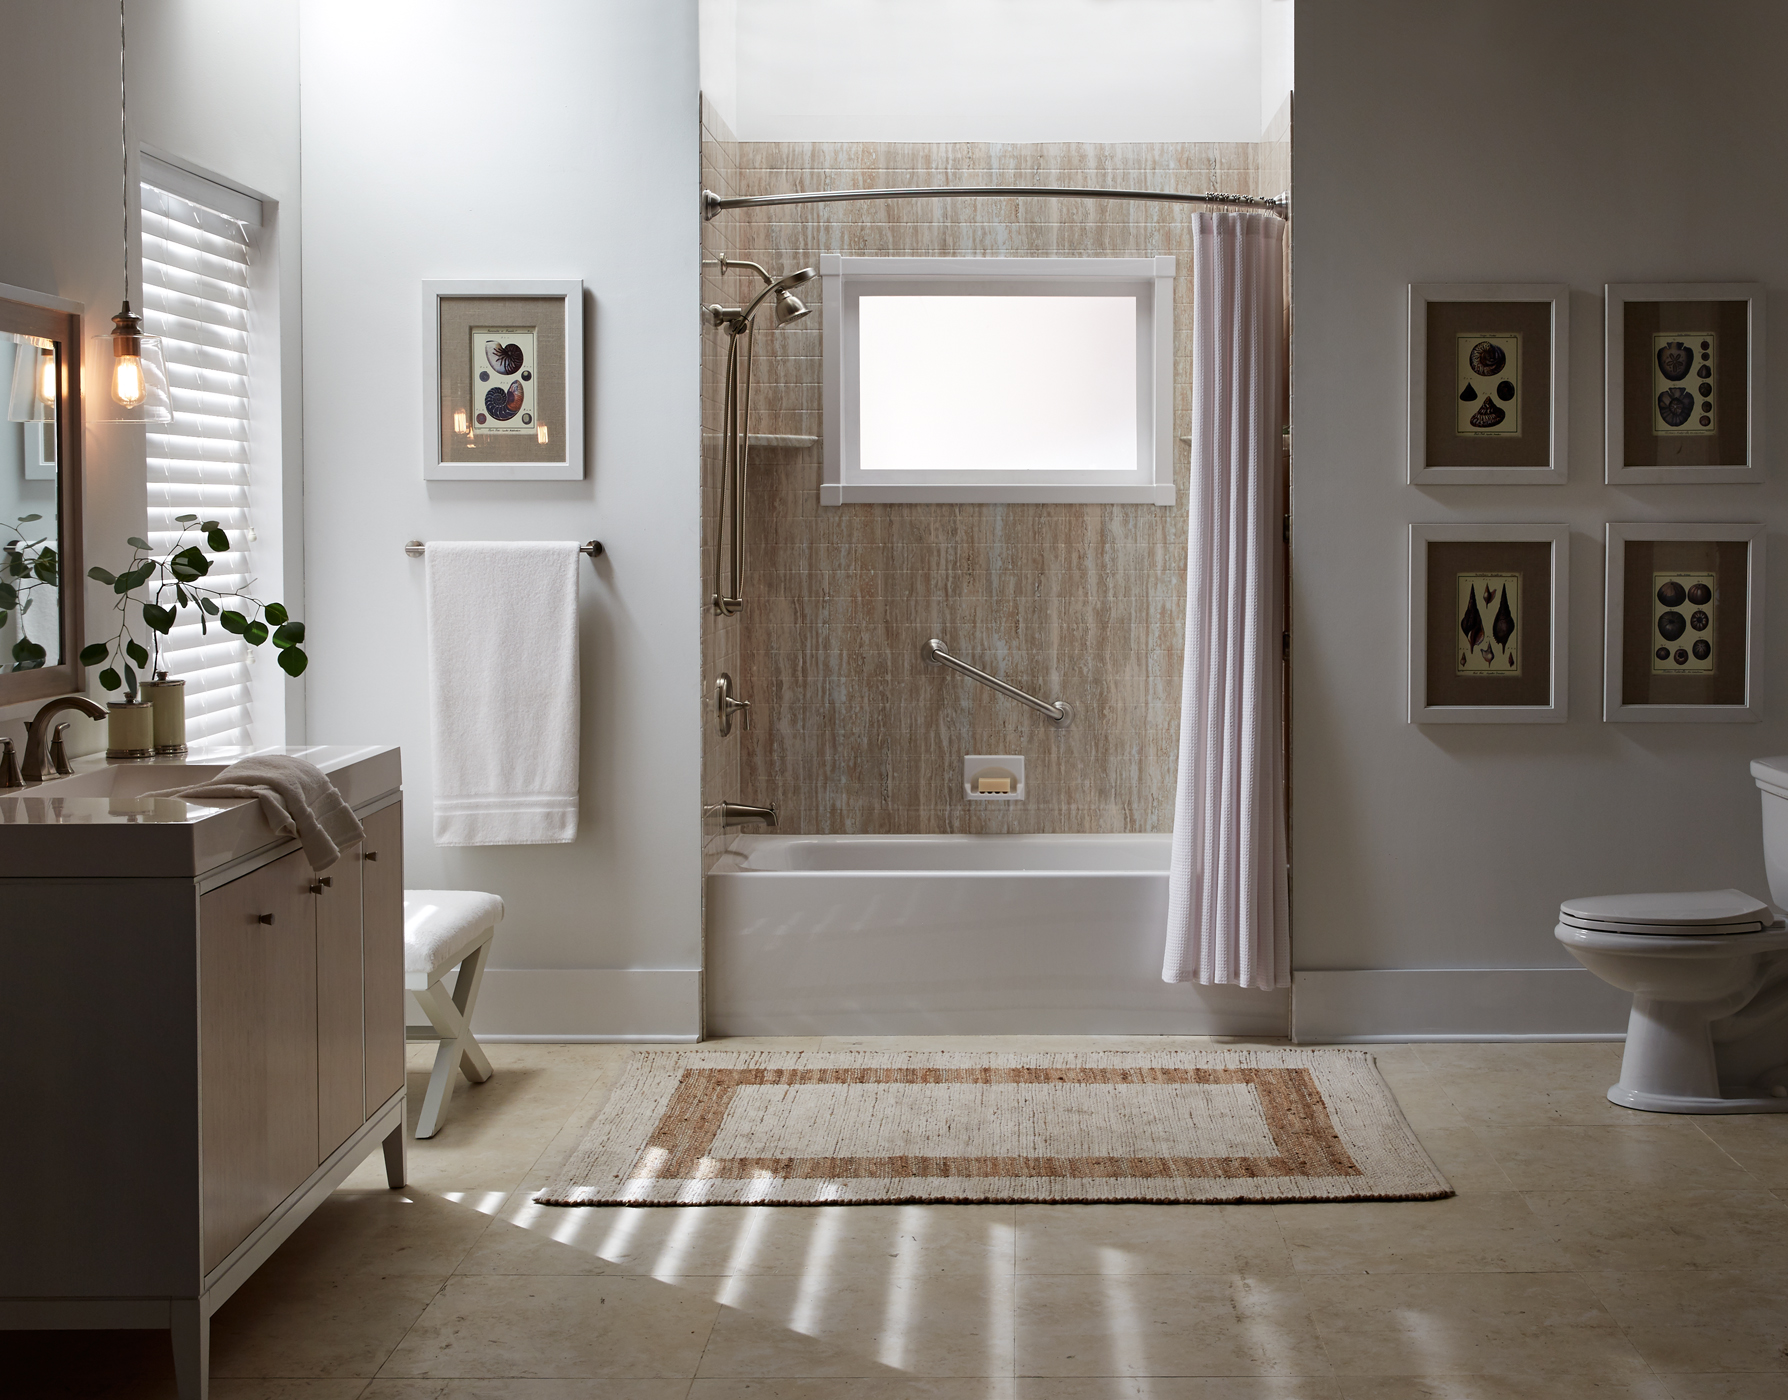 bathroom to of their the done com gallery in proud is birmingham pictures ve lovetteconstruction construction they remodeling lovette al idea present pin work